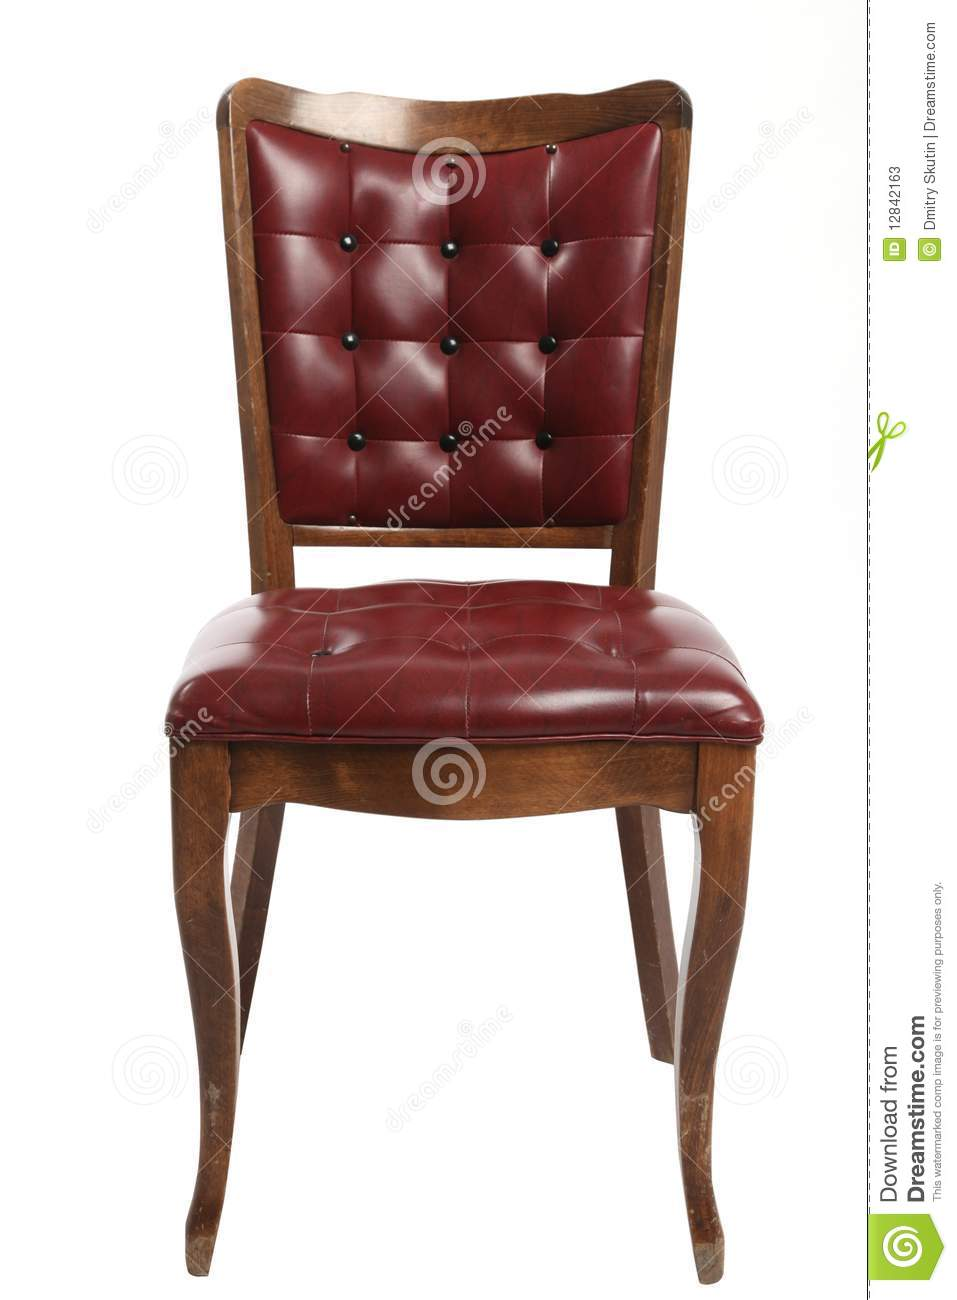 dark brown leather chair flag halyard old stock image. image of fashioned, dark, indoors - 12842163